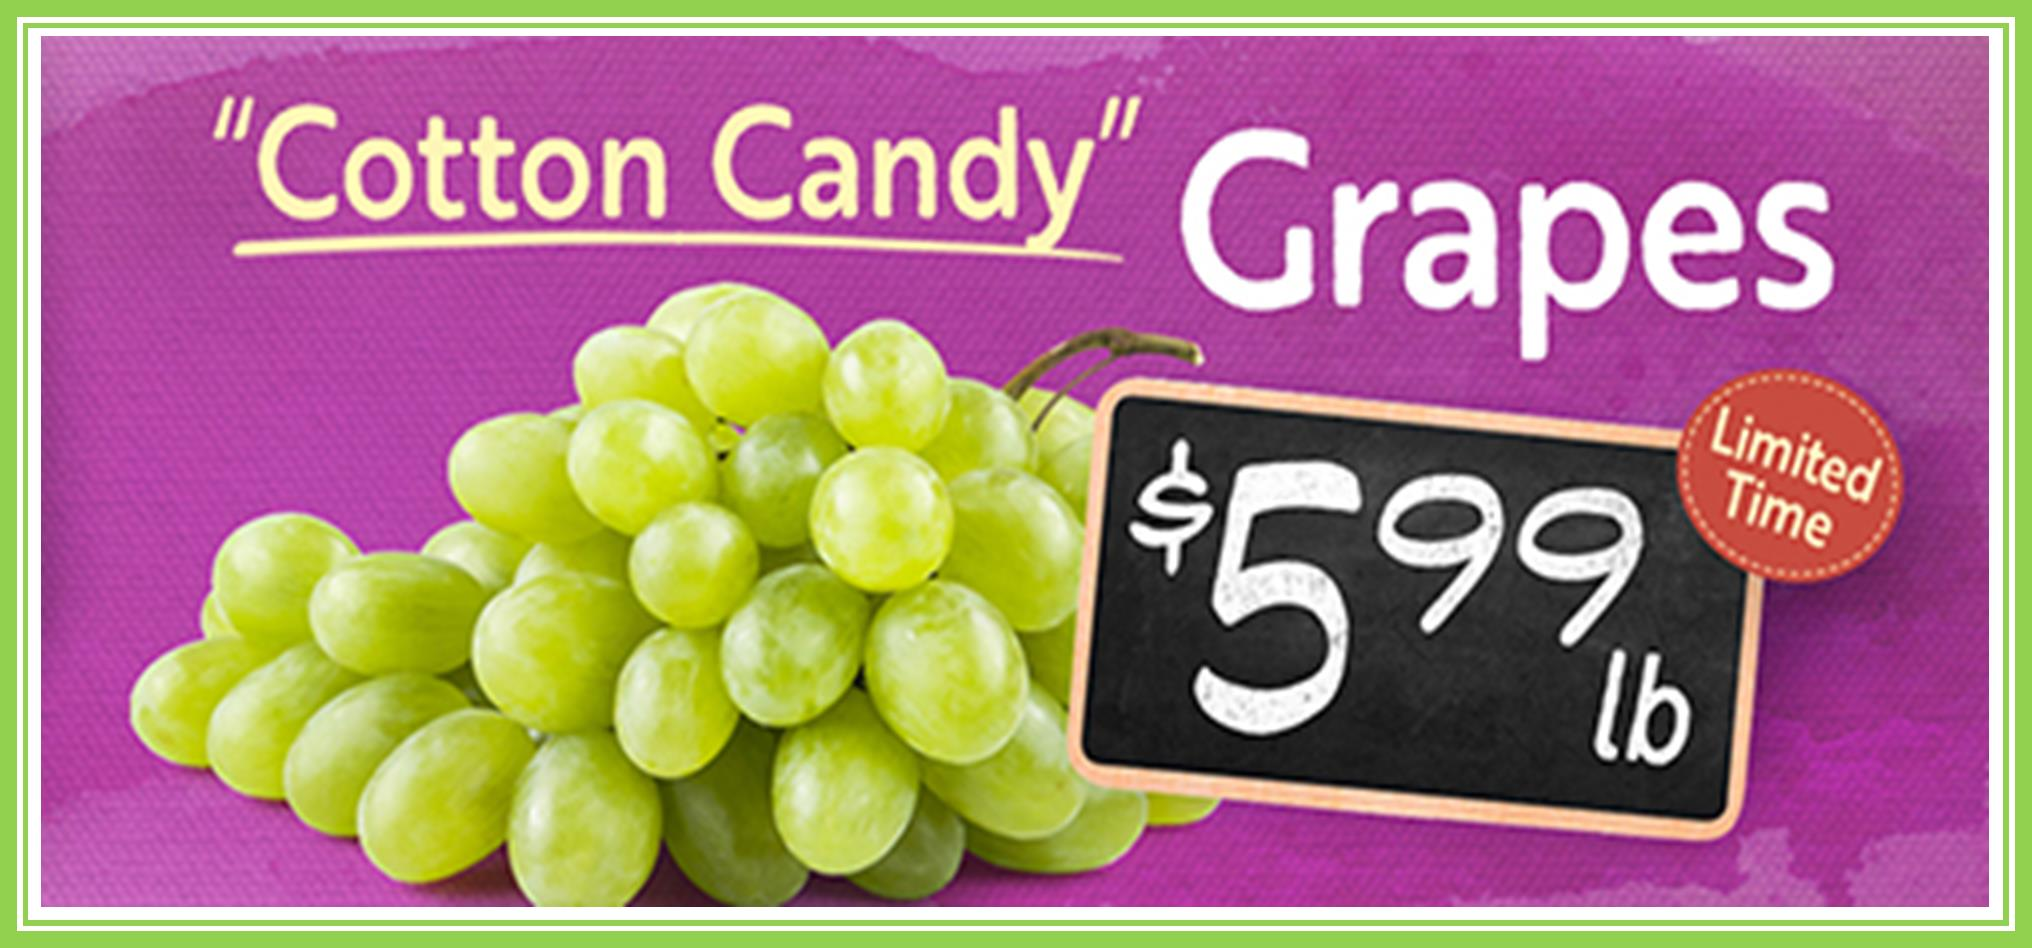 Grapes Cotton Candy 599.jpg